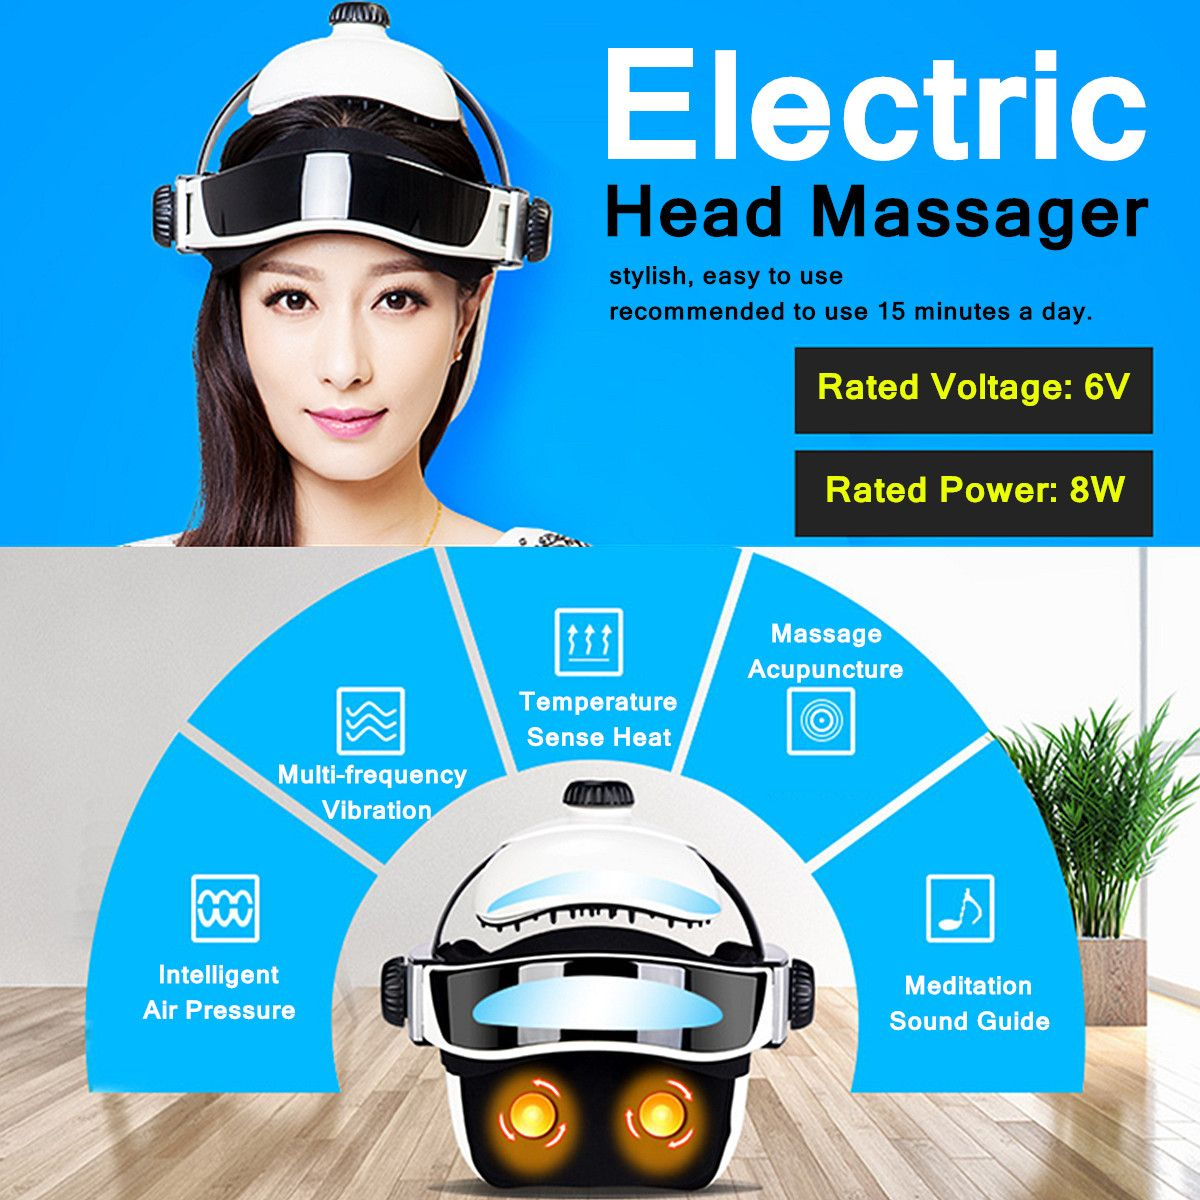 6V 8W 100-240V 50/60Hz Electric Head Massager Infrared Pressure Relax Acupuncture Music Massage Helmet ABS+ Rubber + Sponge